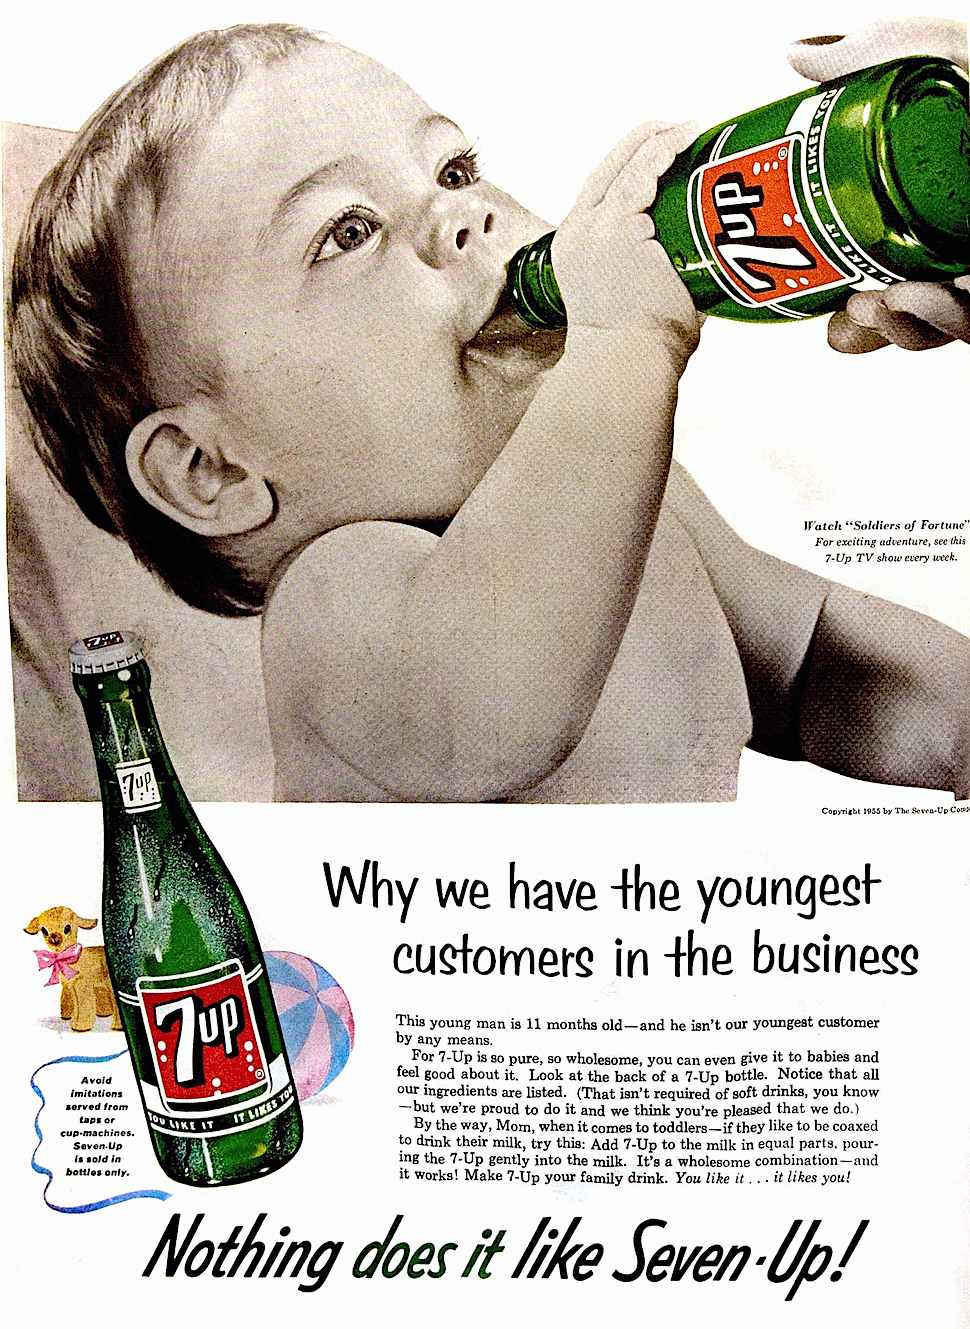 a 1955 magazine advertisement for Seven-up, a baby drinking 7up